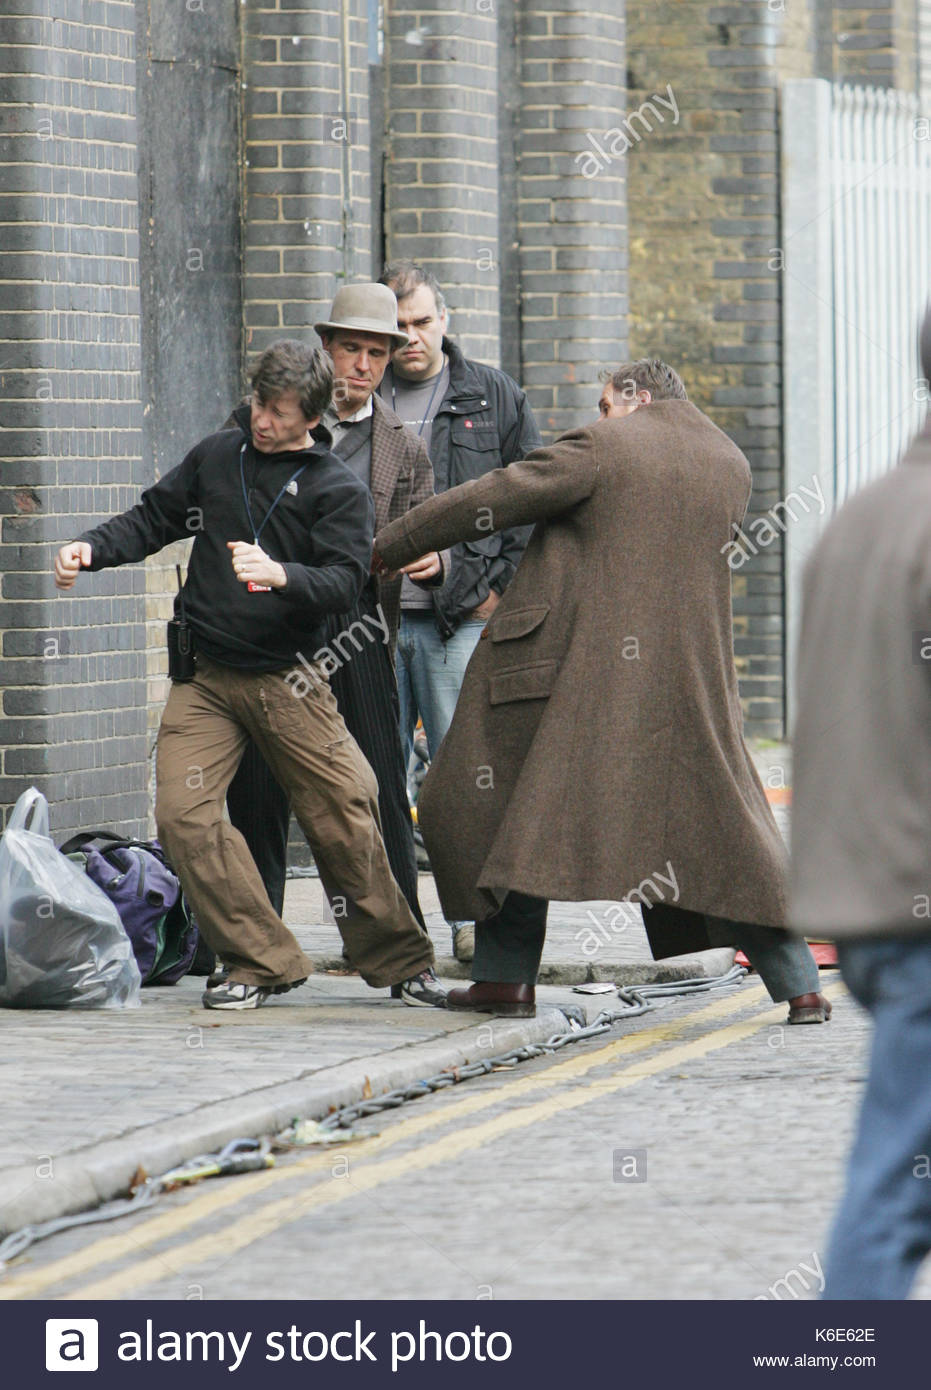 Fight Scenes Are Like Learning A Dance You Learn It Move: Stunt Men Rehearsing A Fight Scene. Guy Ritchie And Jude